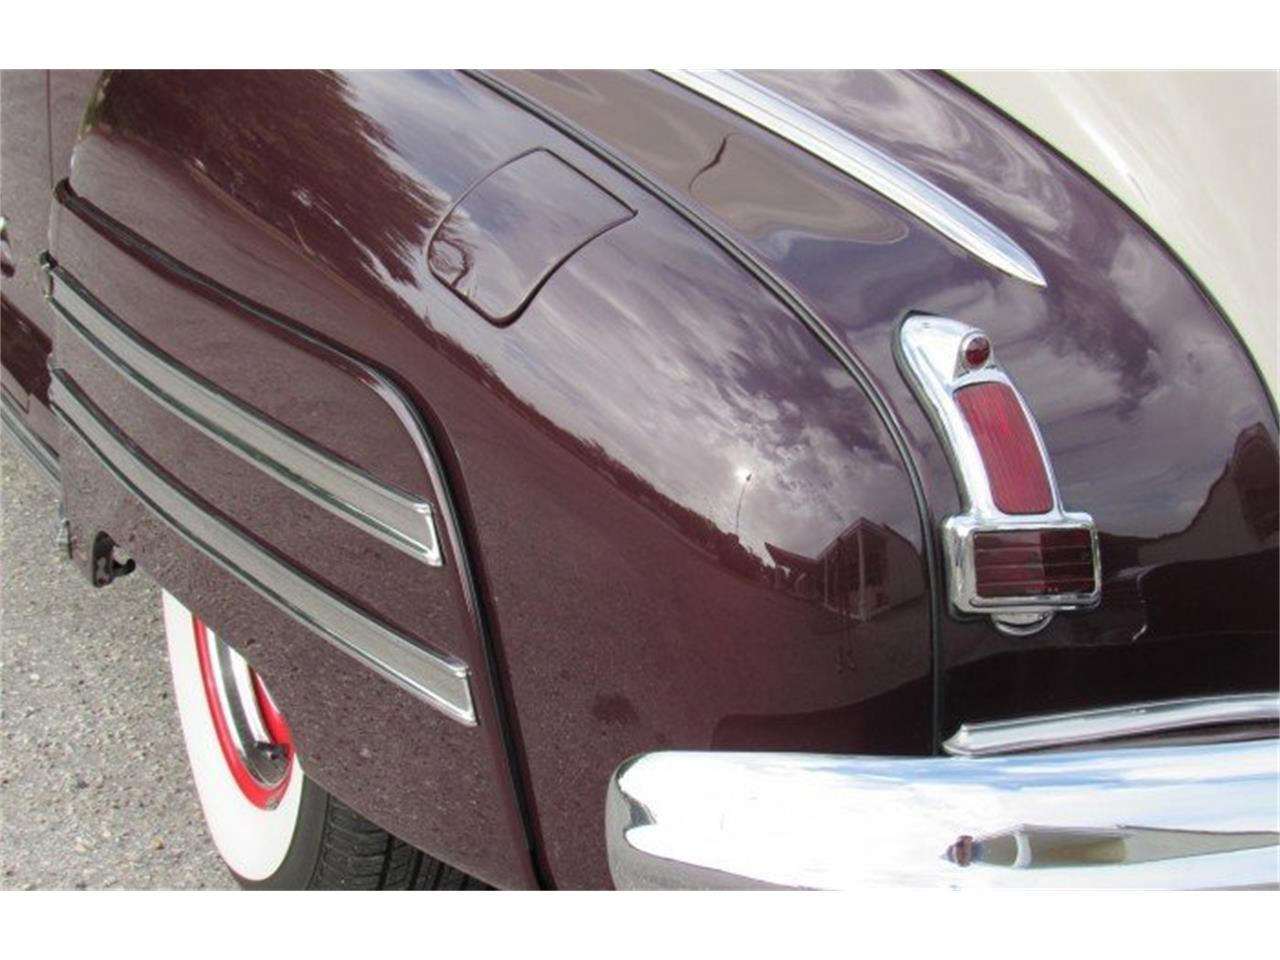 Large Picture of '42 Century located in Punta Gorda Florida Auction Vehicle Offered by Premier Auction Group - PH14